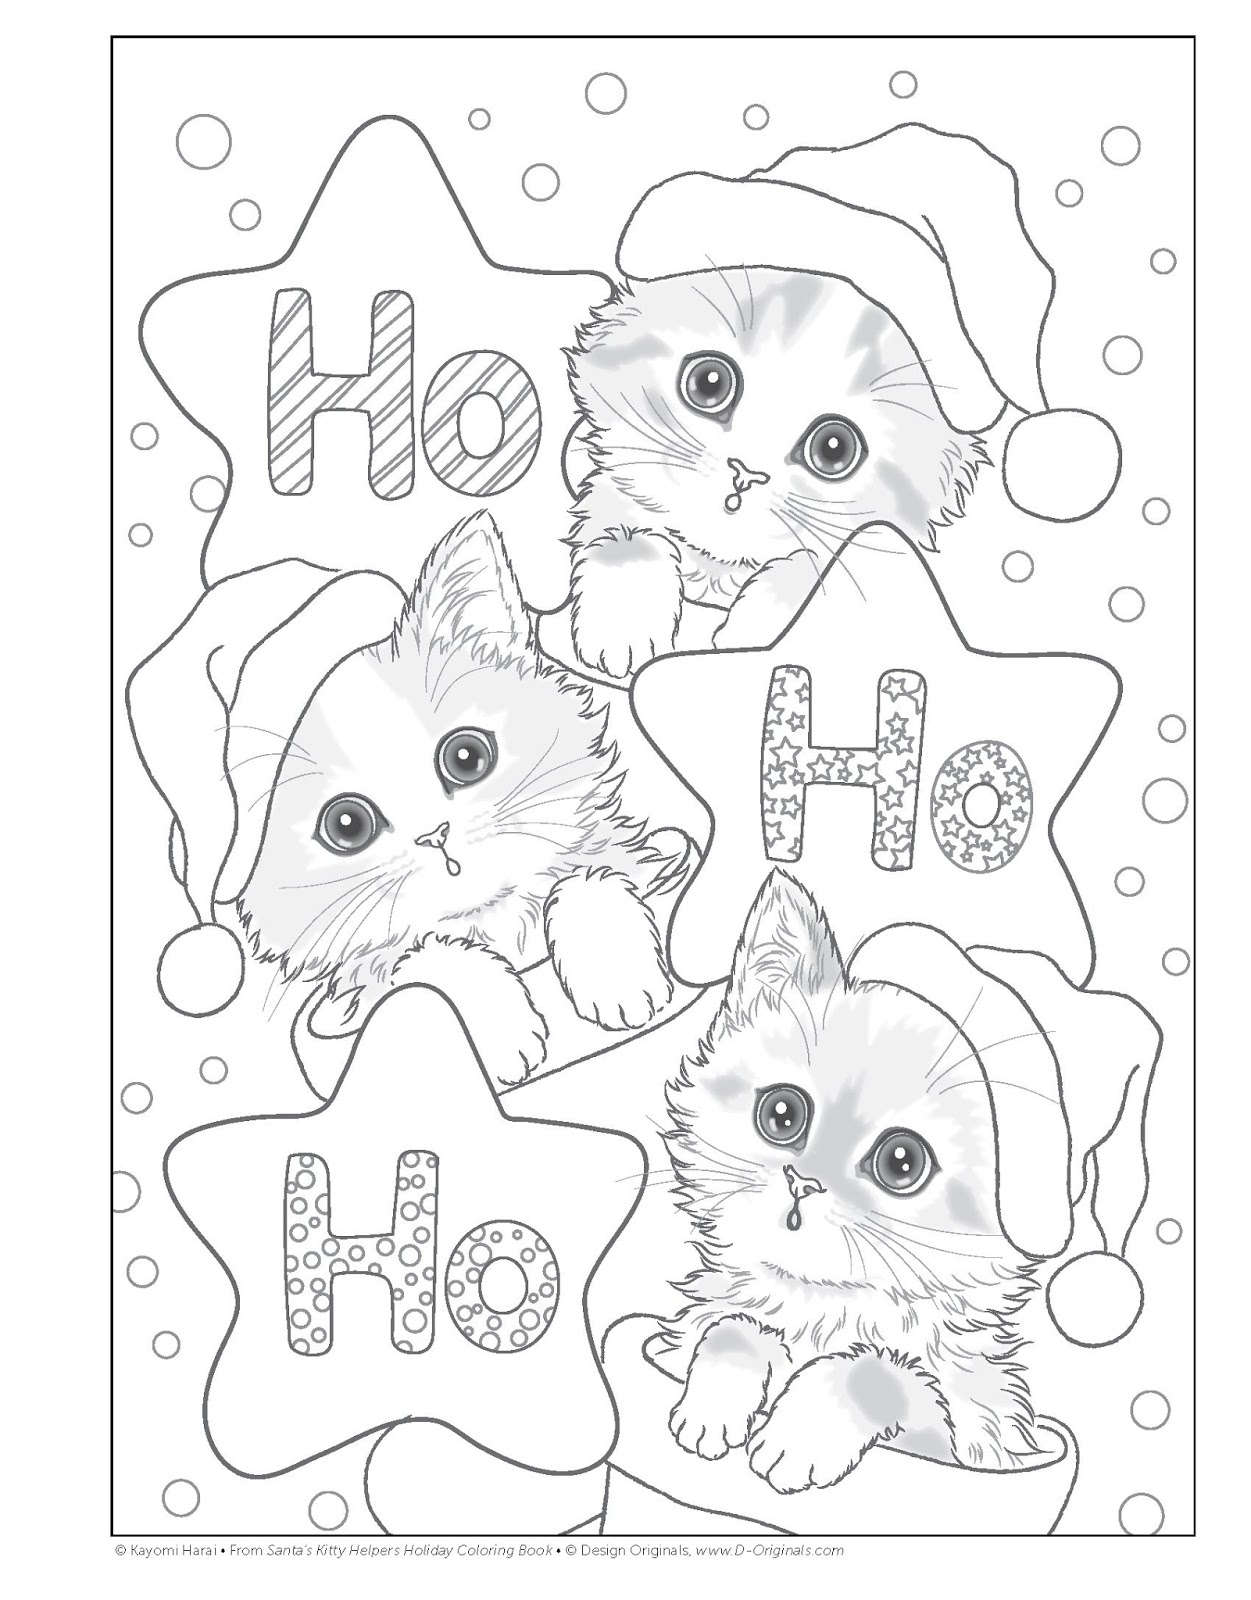 readers will recognize these same black white coloring pages from kayomis higher priced santas furry helpers holiday